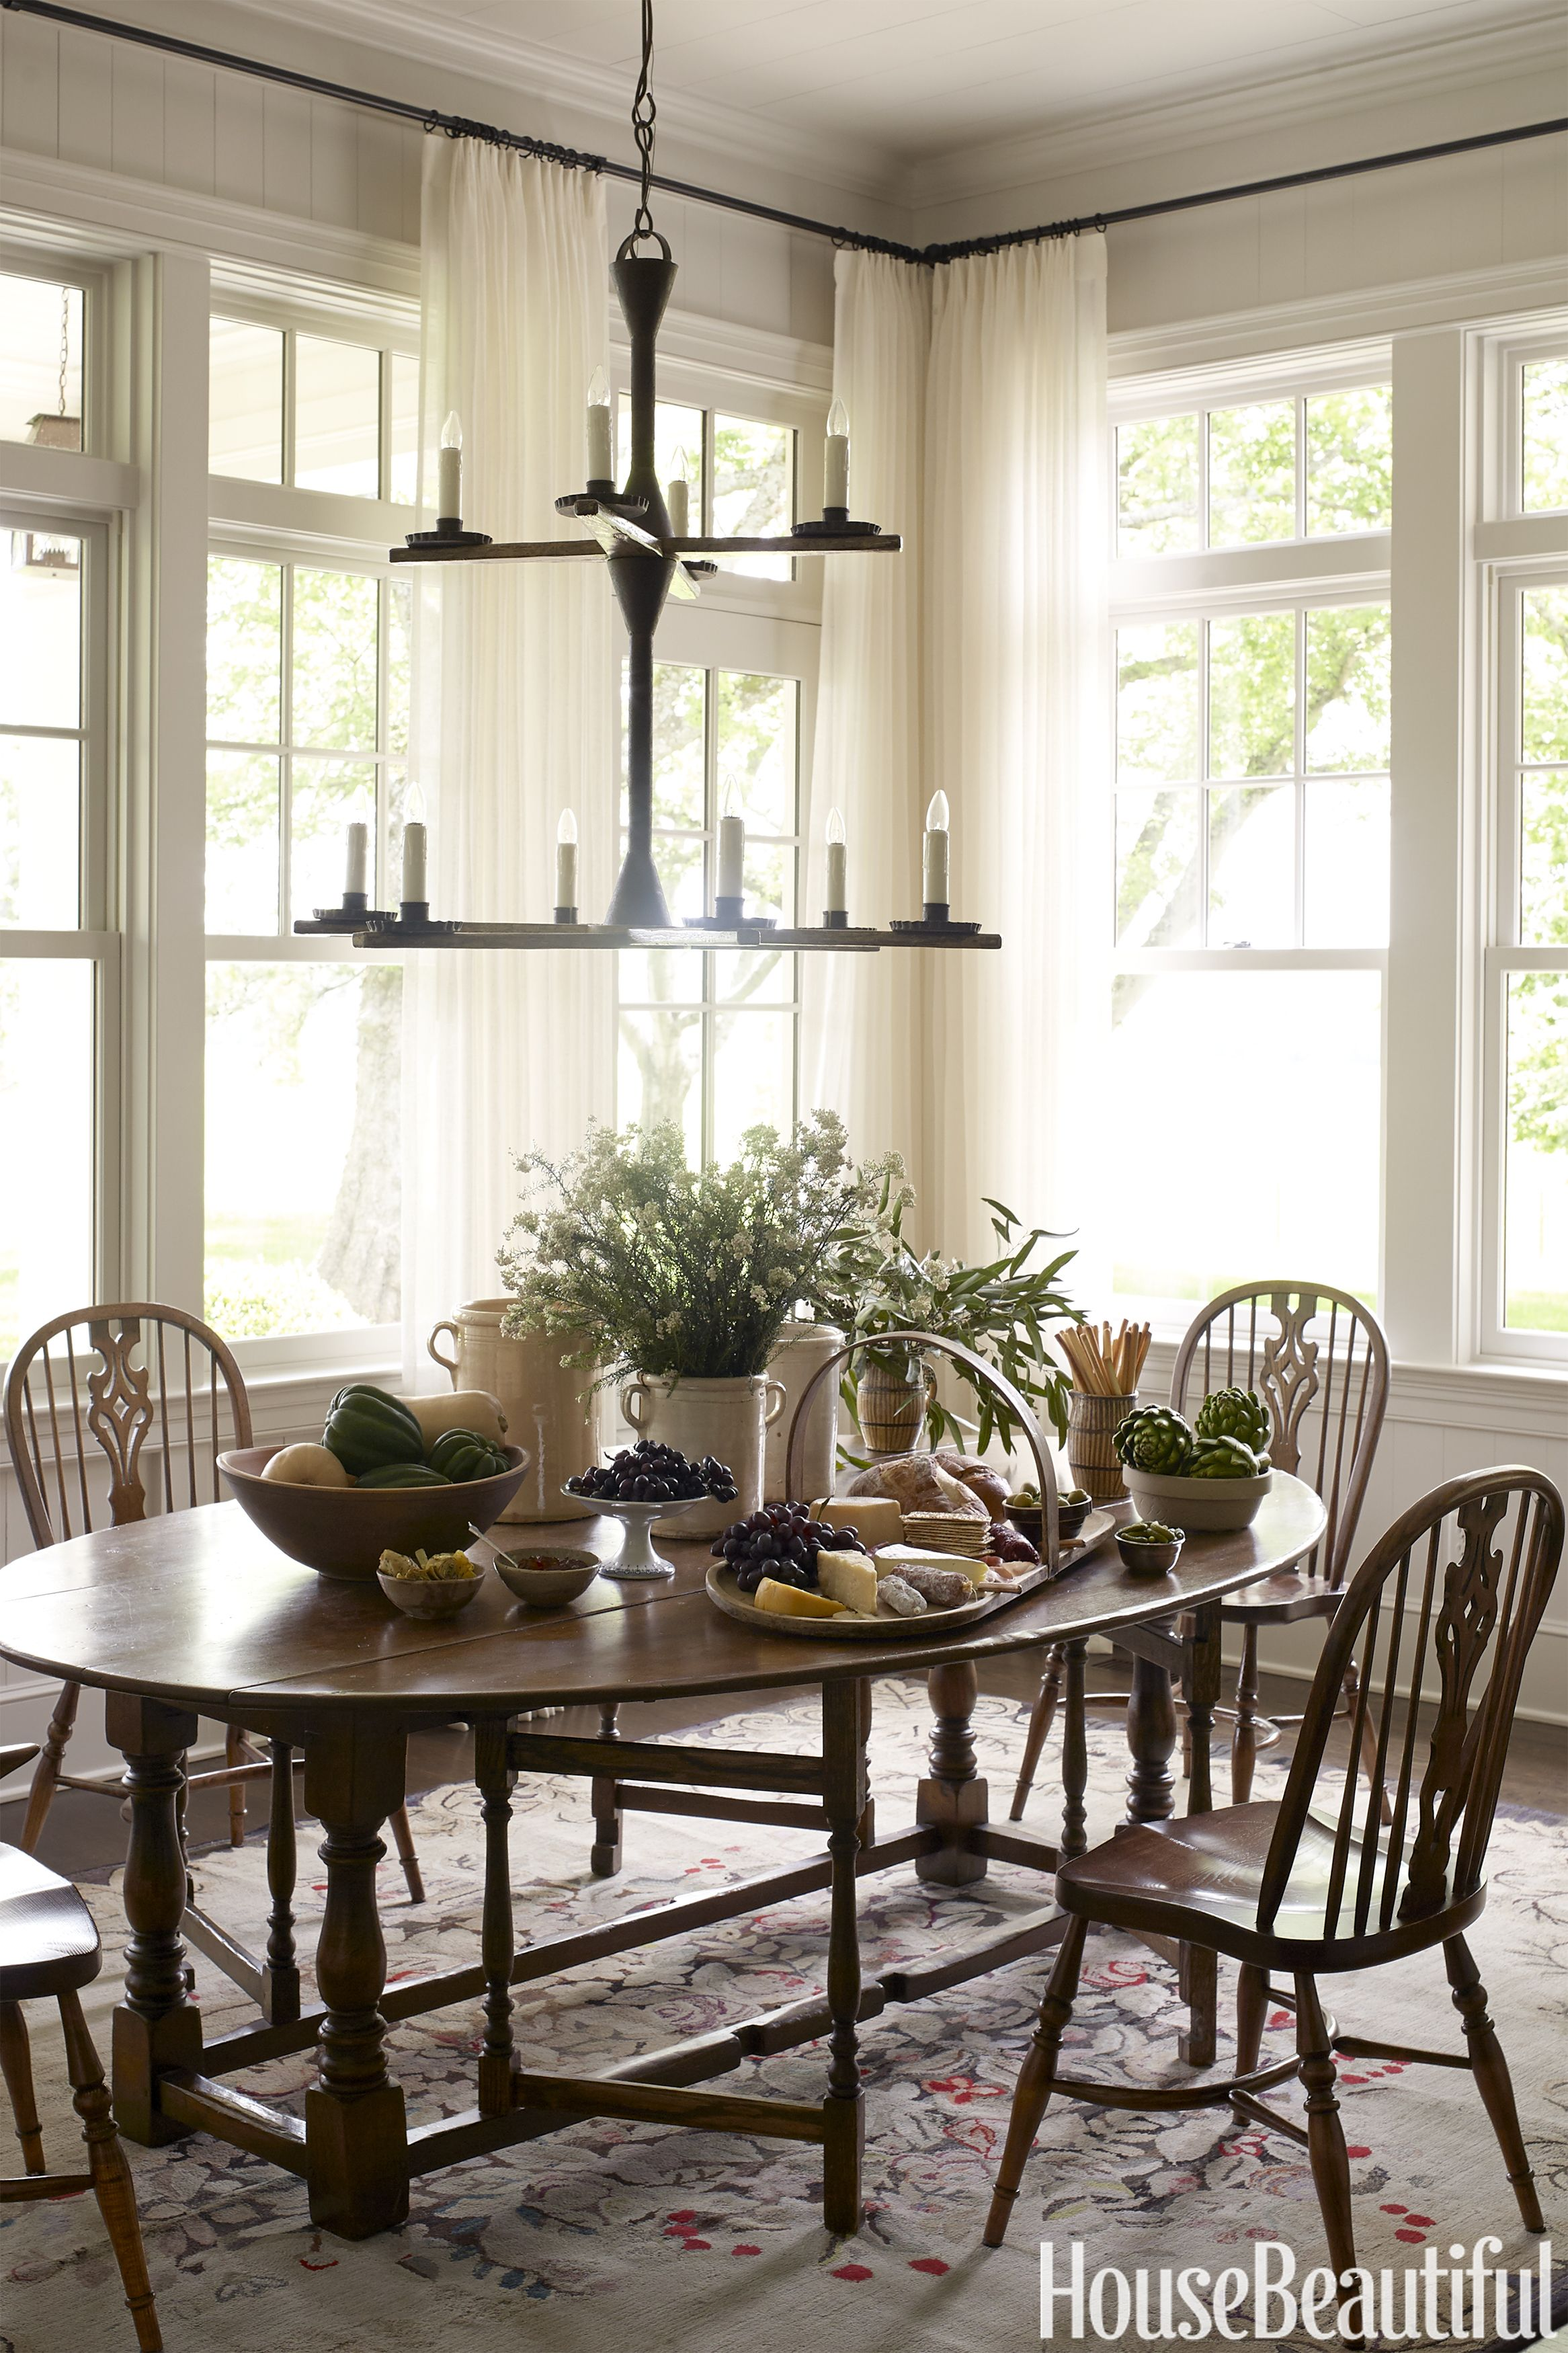 A Tennessee Farm Gets Country Charm - Barbara Westbrook Designs a ...